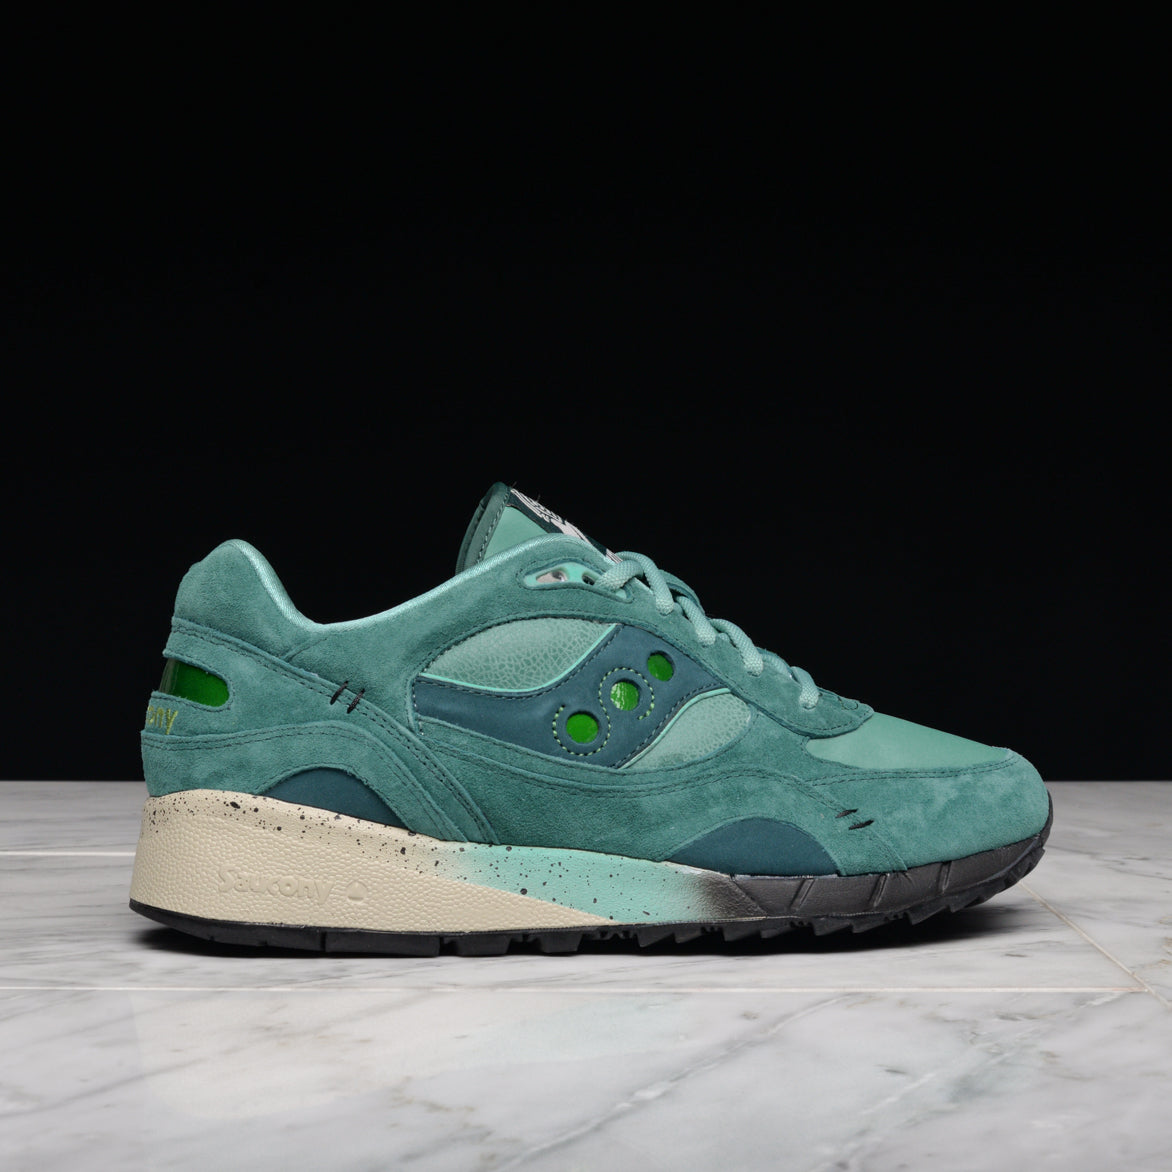 FEATURE x SAUCONY SHADOW 6000 \